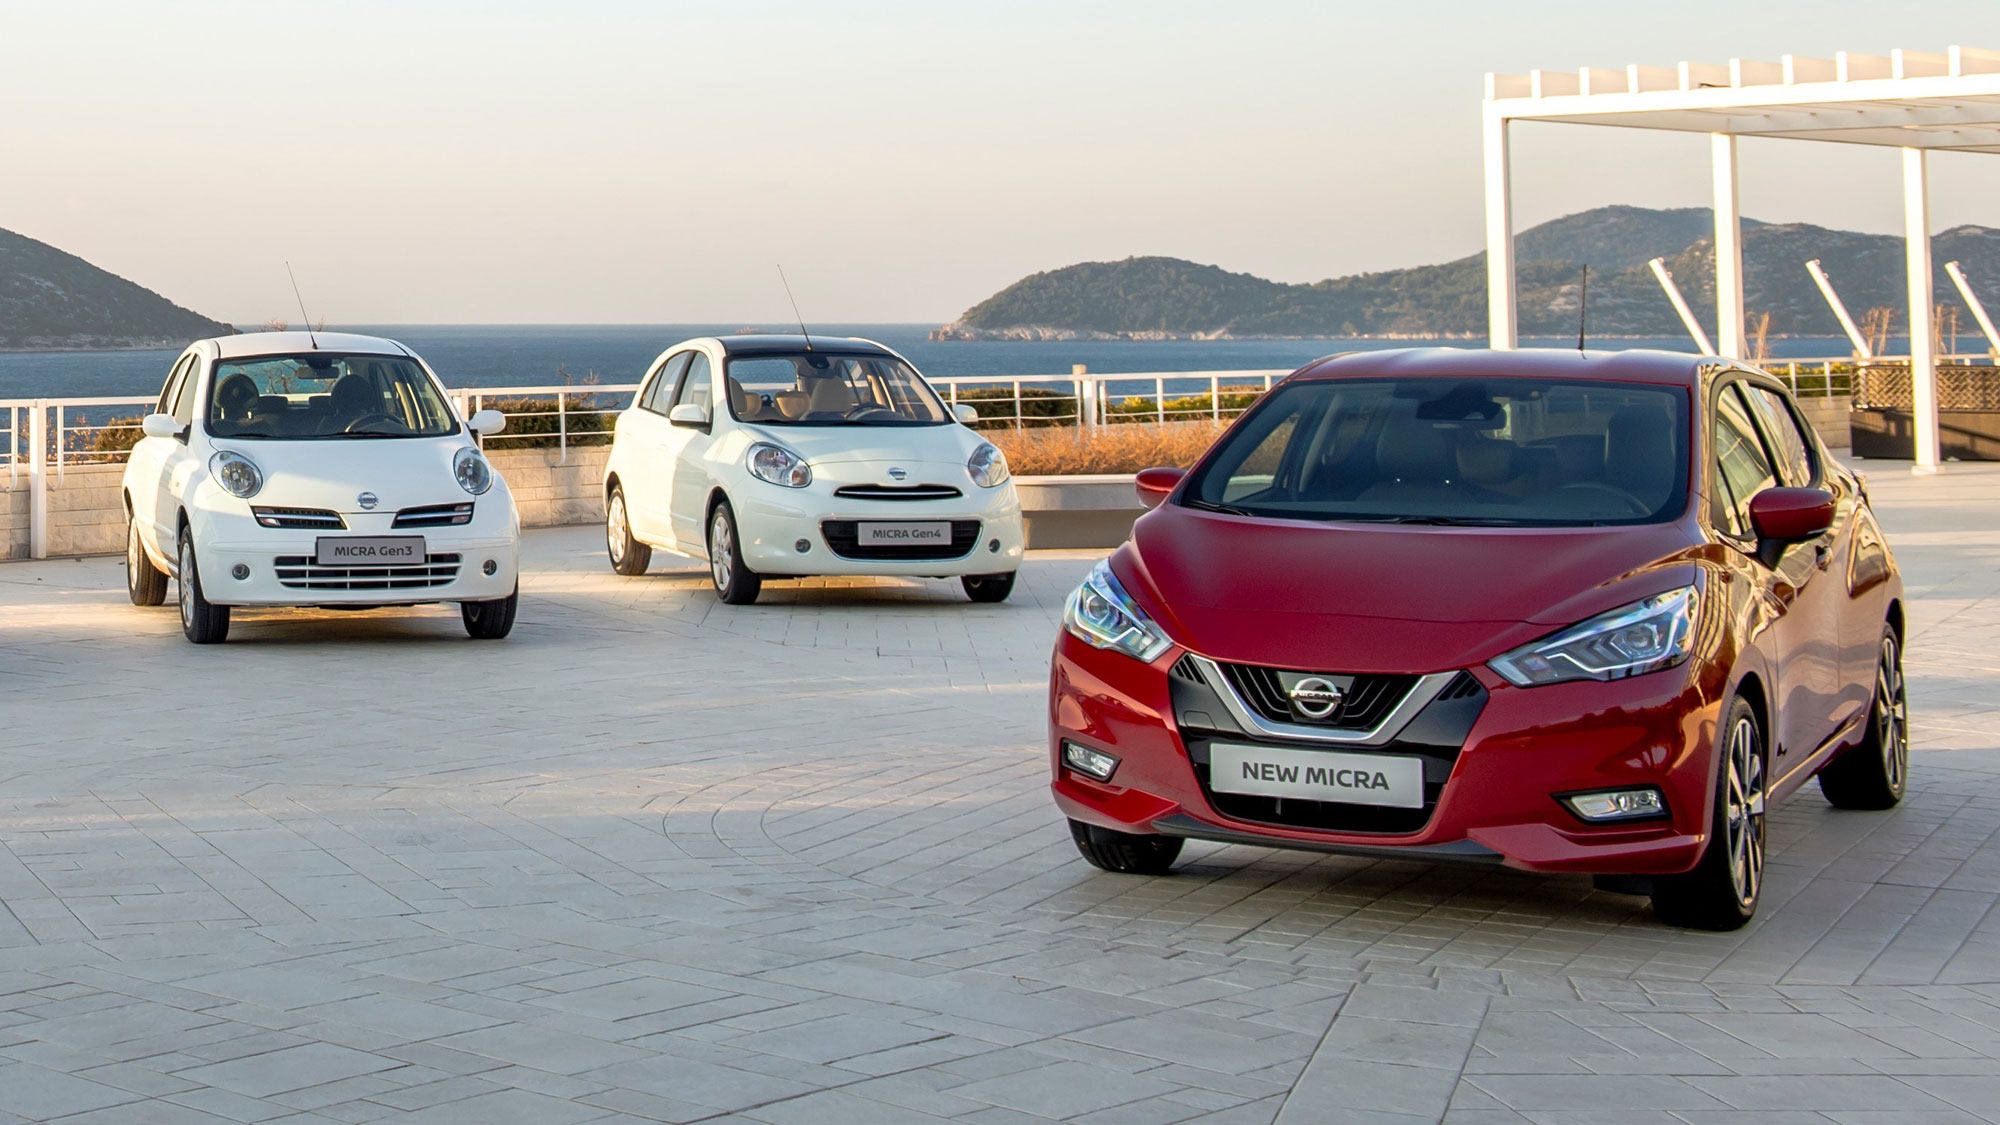 nissan-micra-generations-3-4-and-5